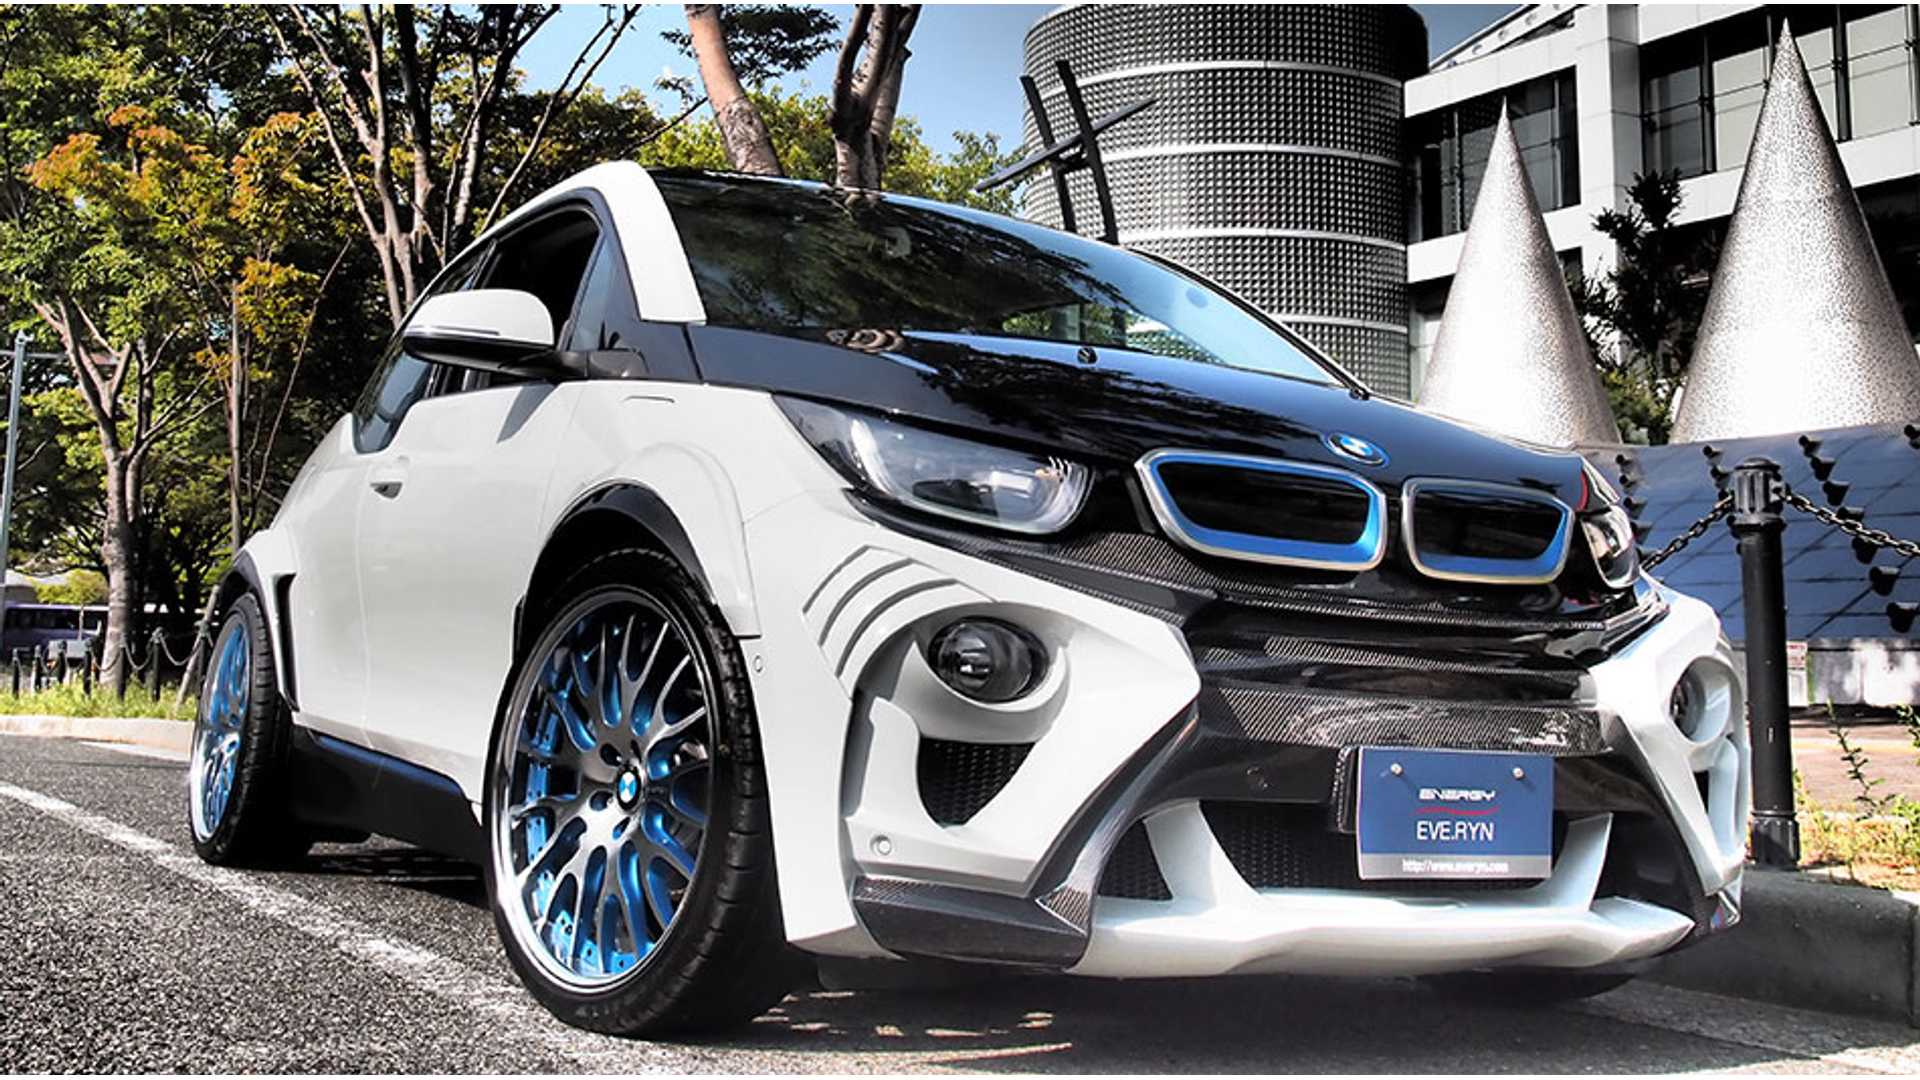 BMW-i3-Garage-Eve.Ryn-22